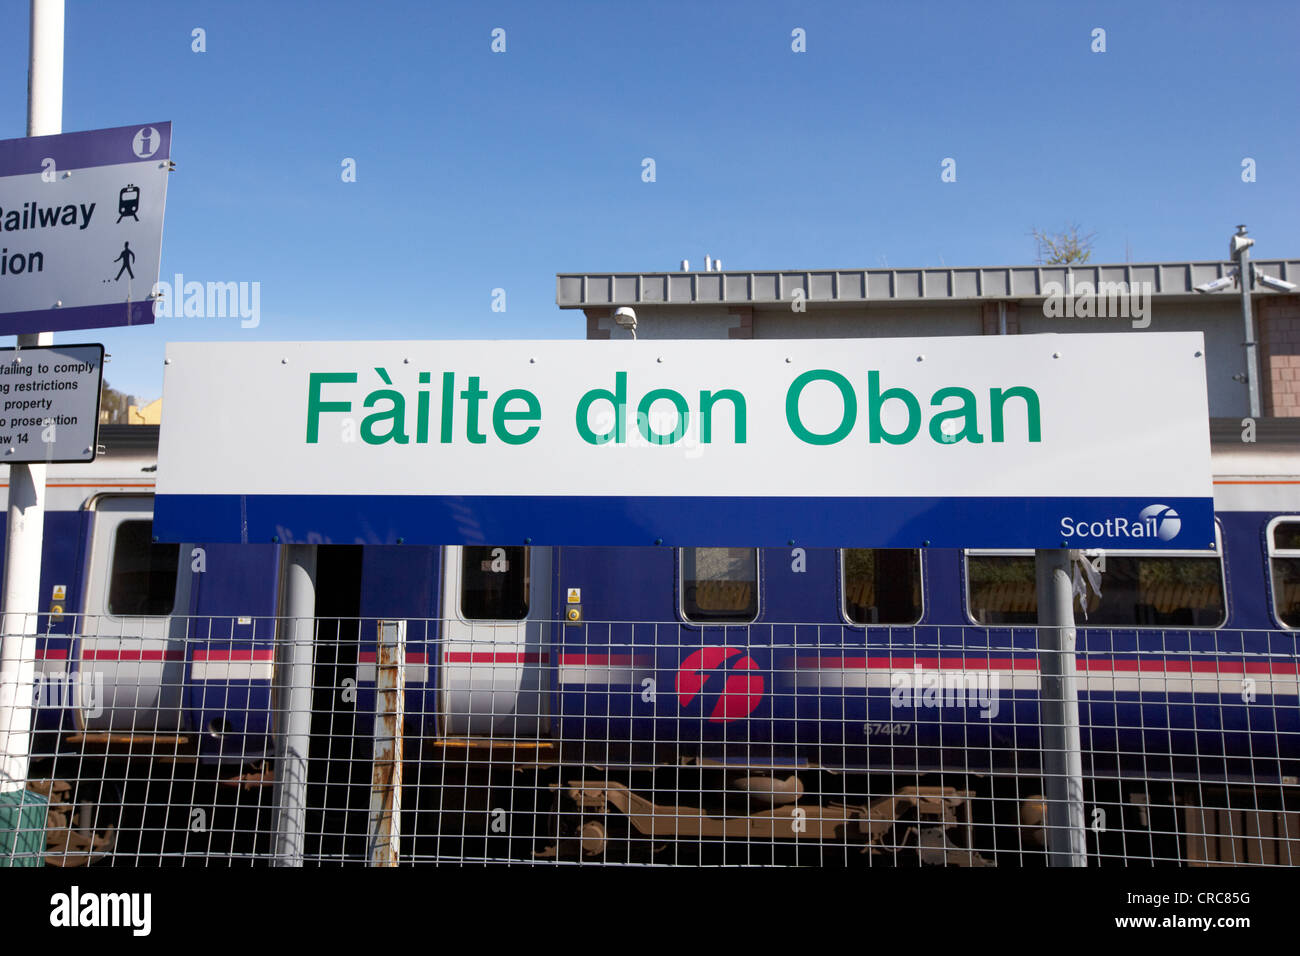 failte don oban welcome to oban in scots gaelic sign at oban train station scotland uk - Stock Image